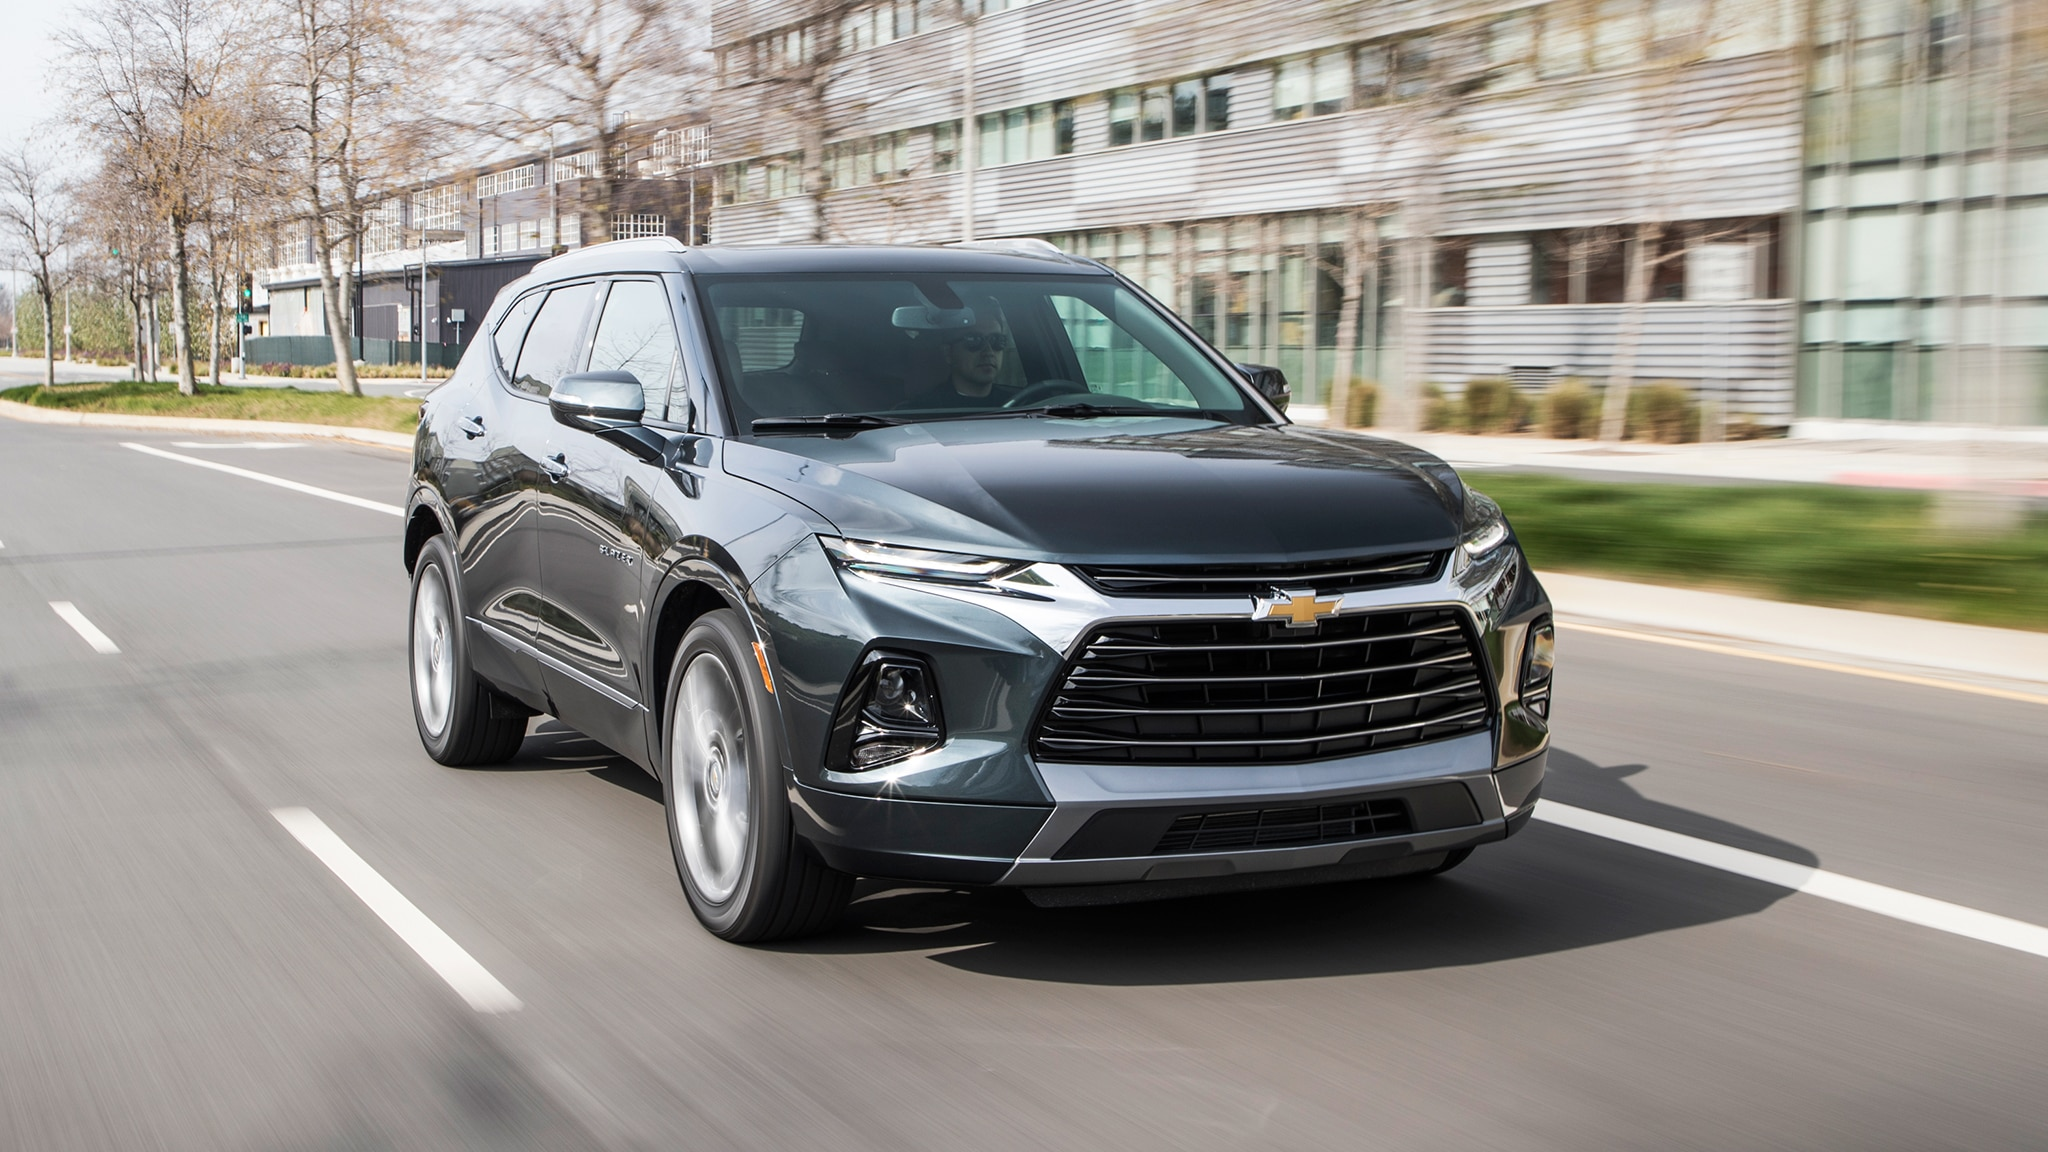 2019 Chevrolet Blazer First Drive Review: The Optimist's